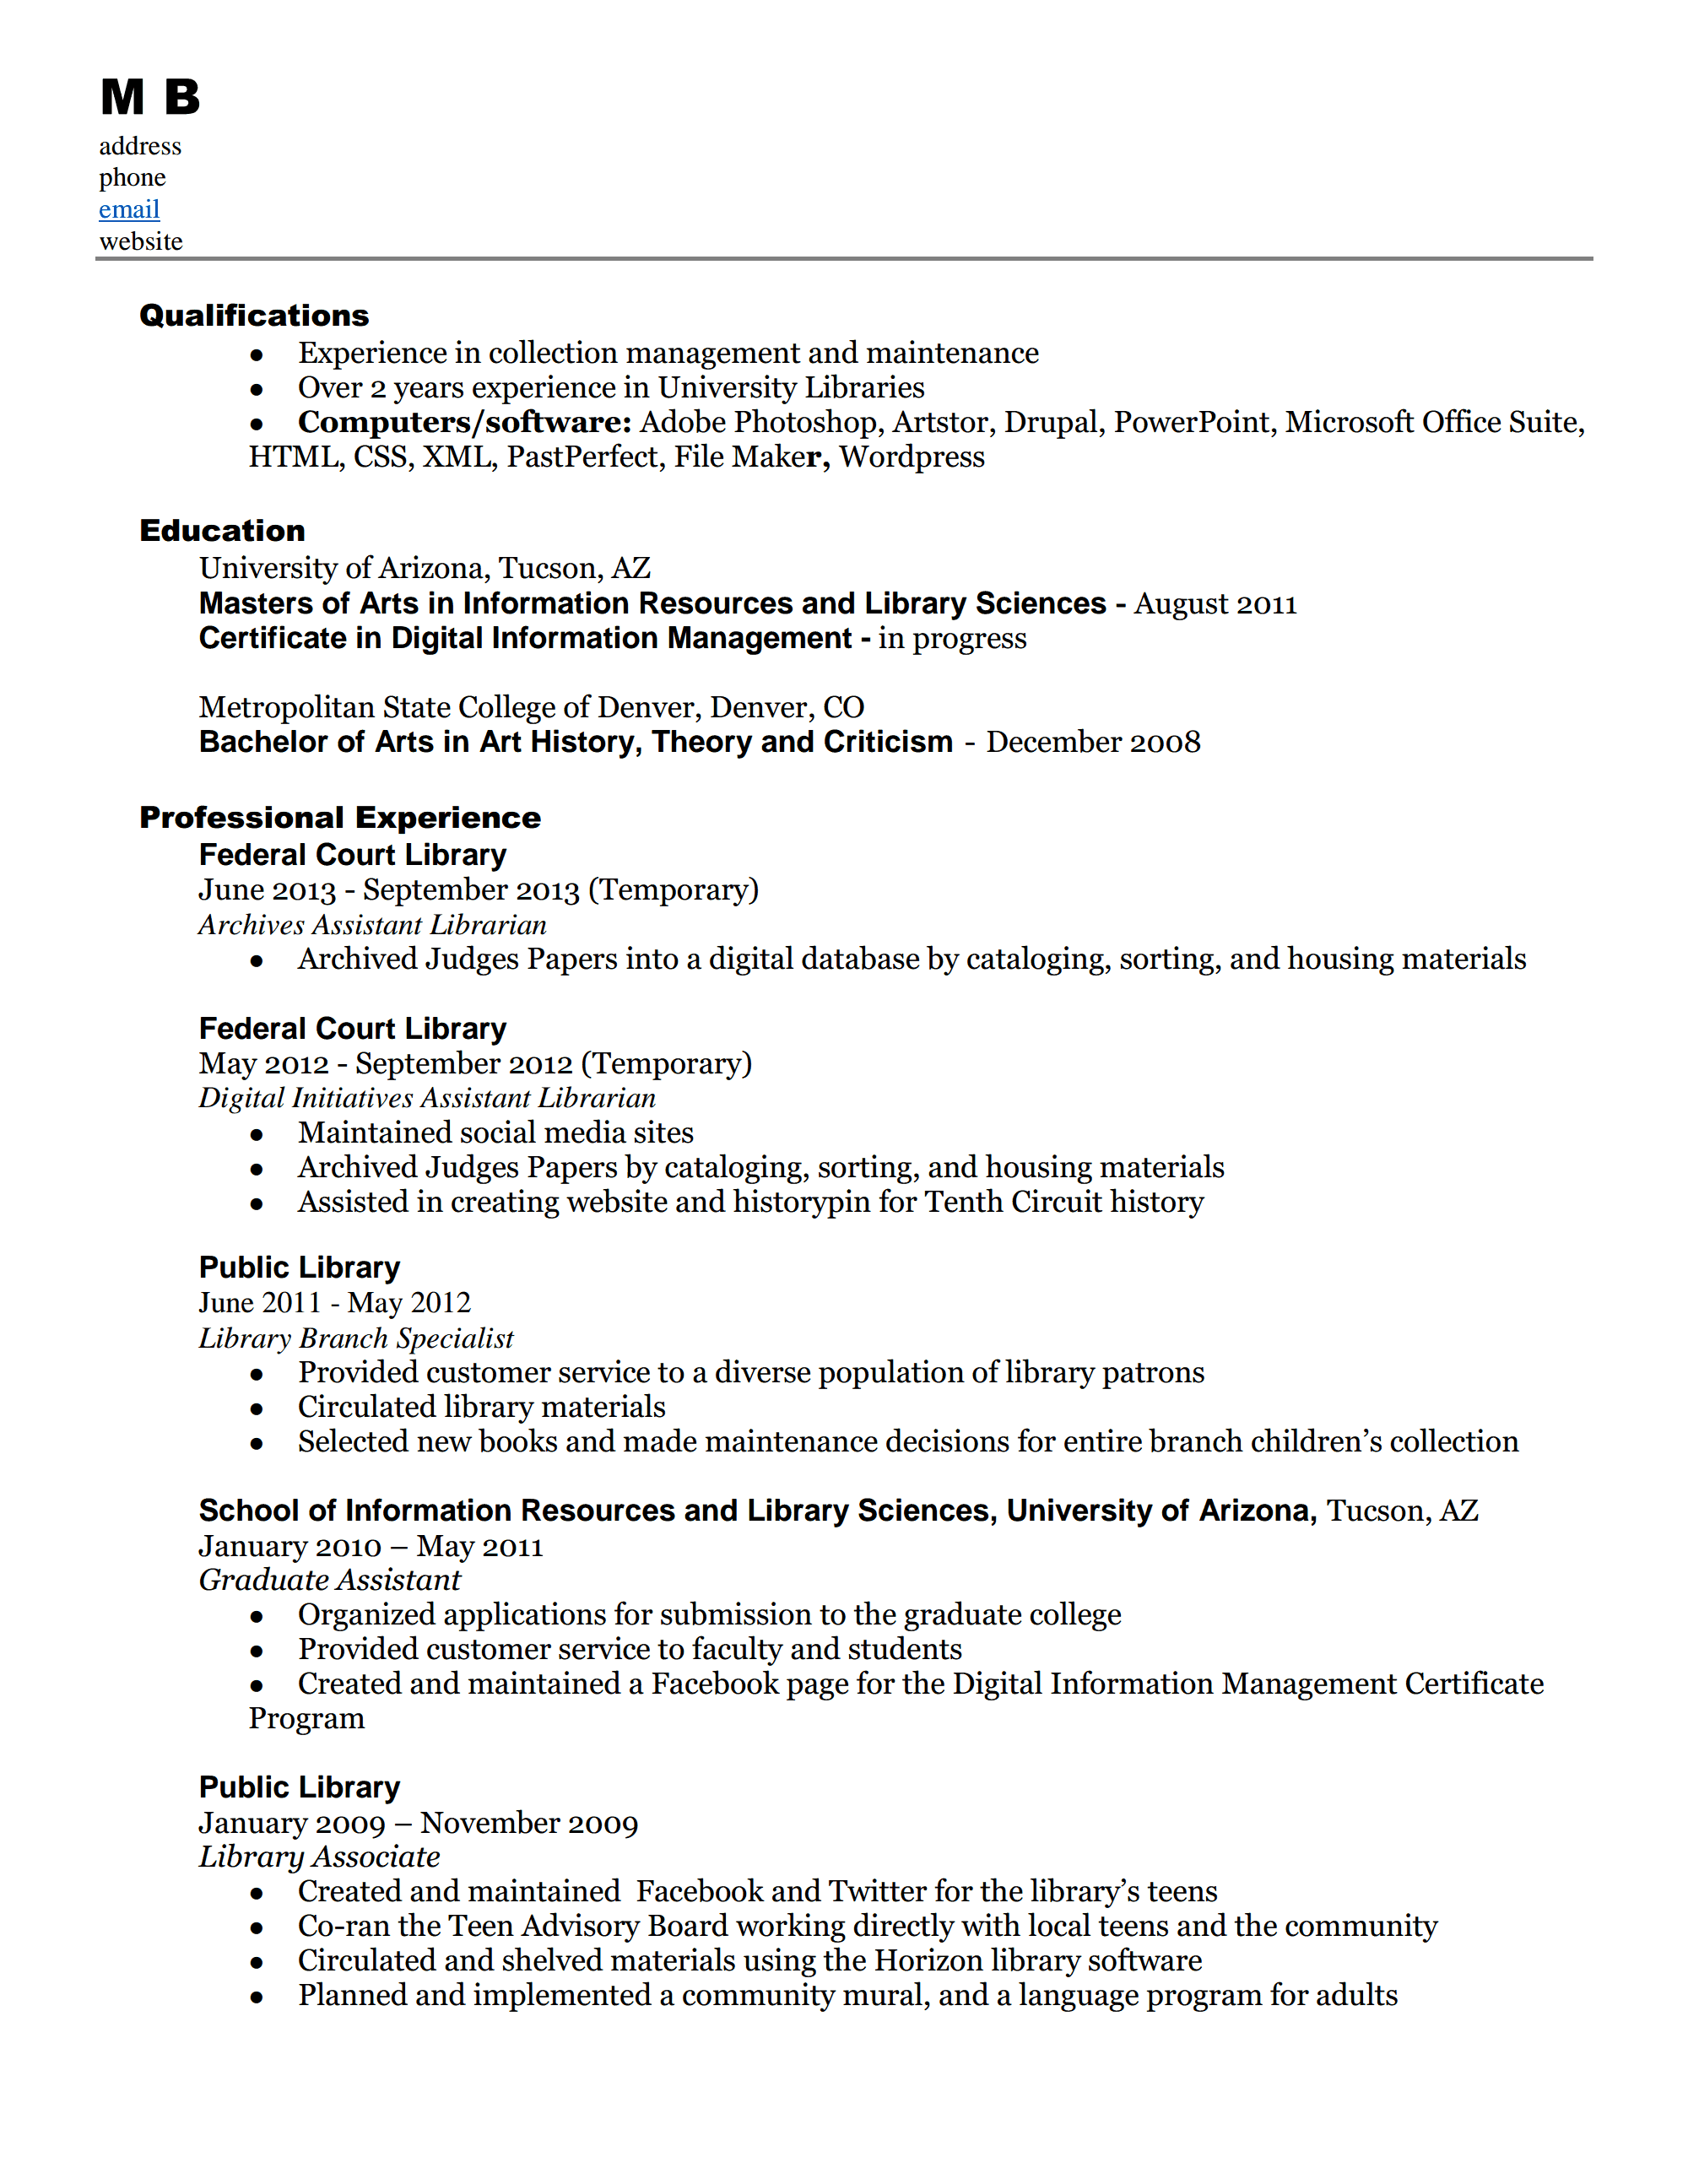 Resume Format Resume Writing For Teacher Position 14 How To Write The Best C  V For A